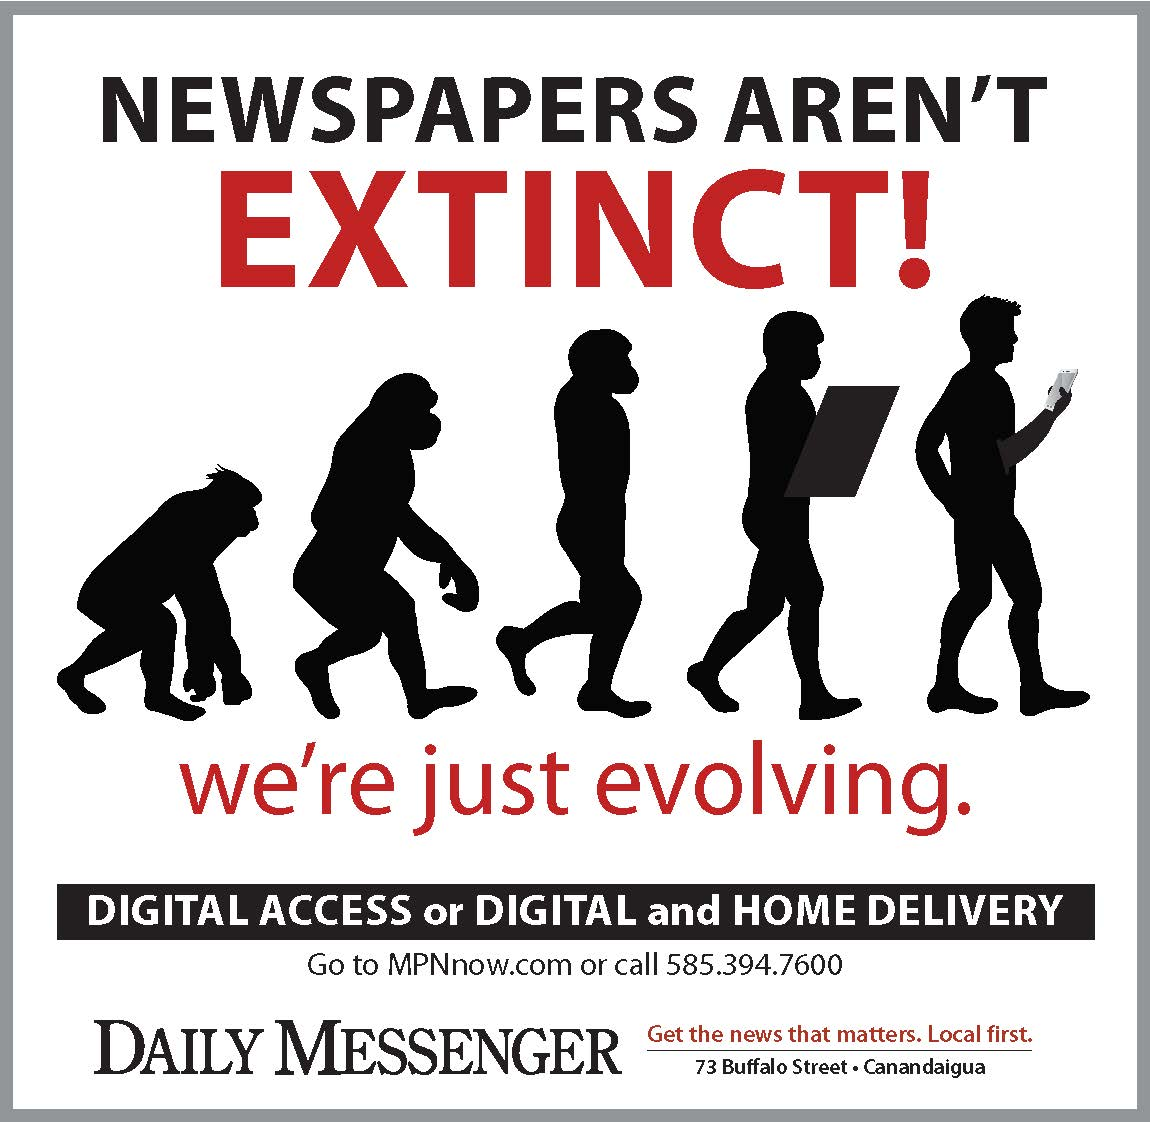 Newspapers Aren't Extinct!